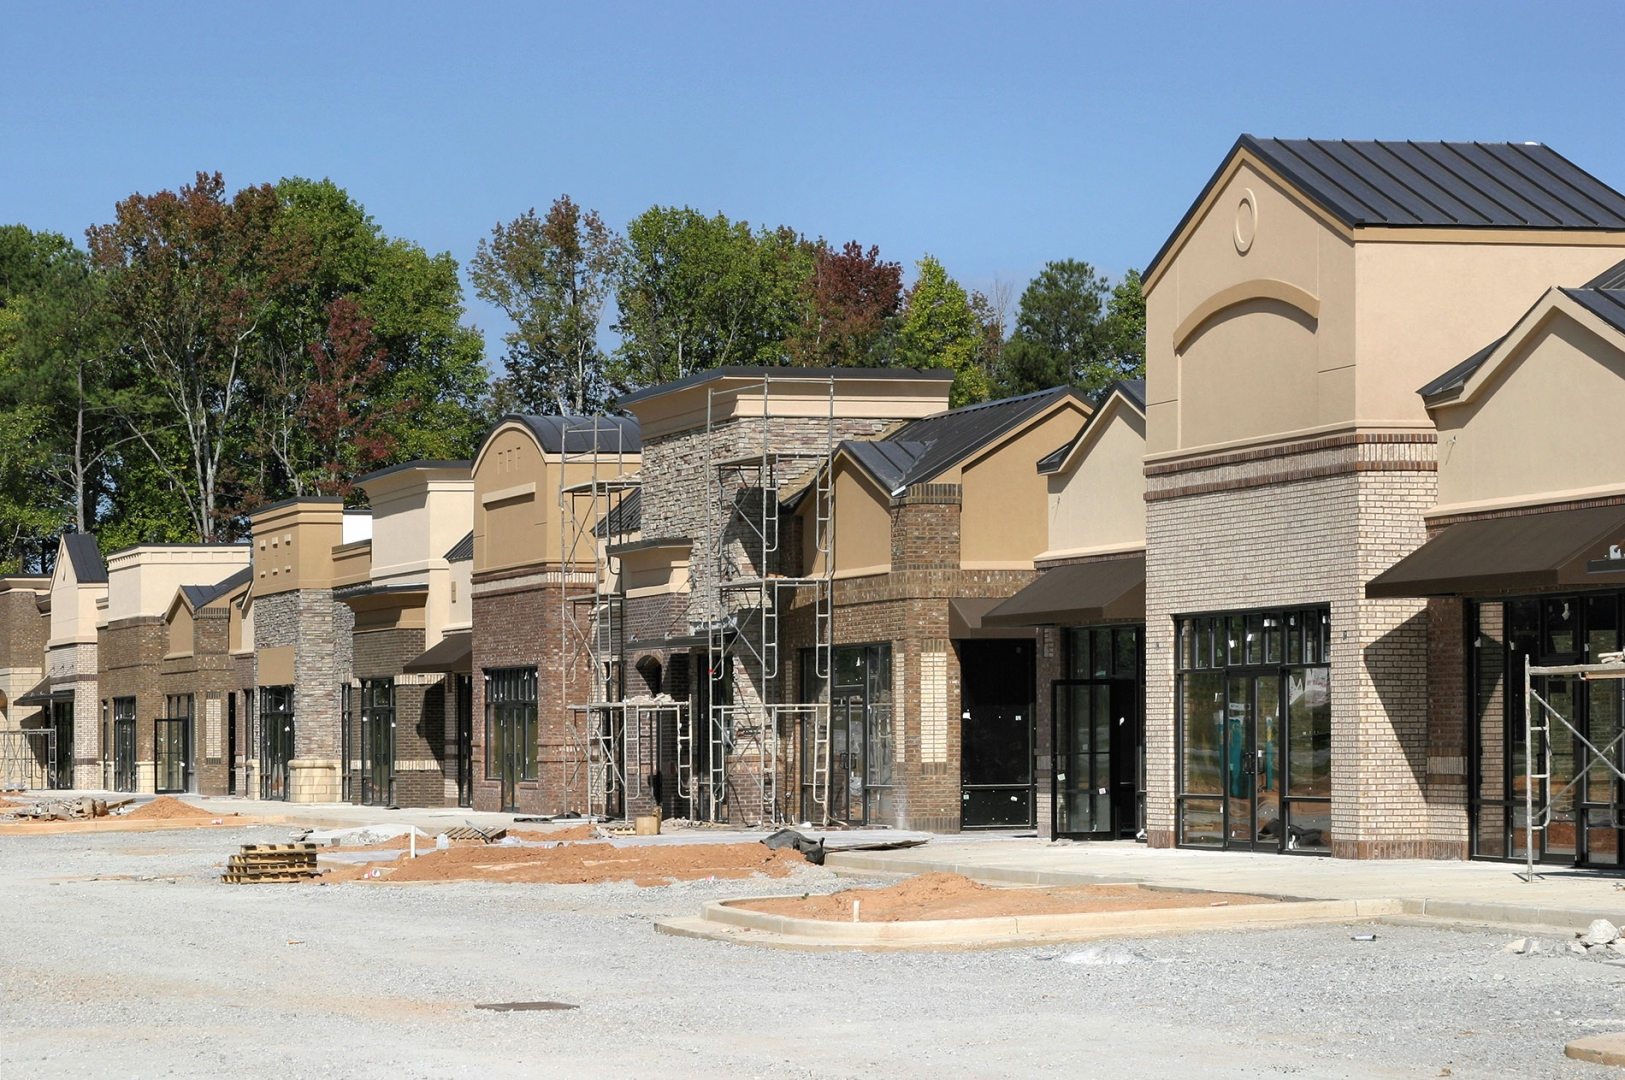 Retail-development strip mall under construction